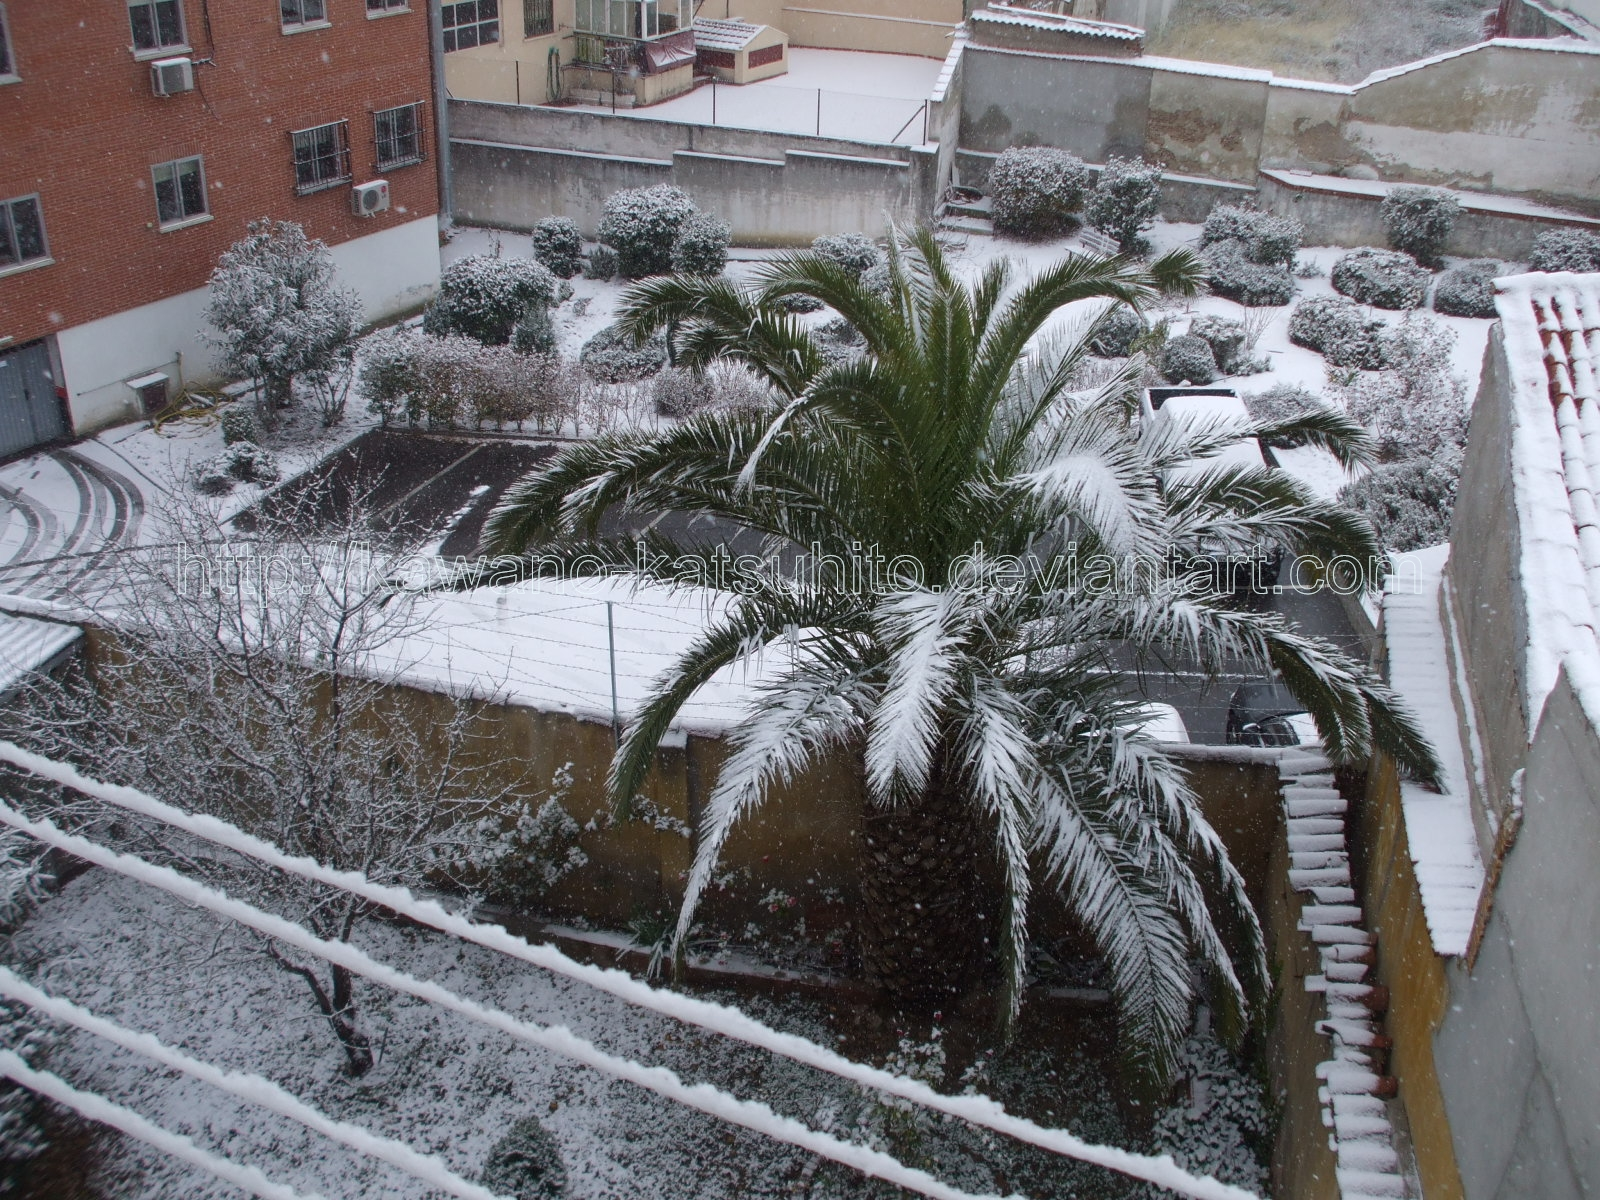 Snow in Madrid, 9-1-2009: 2